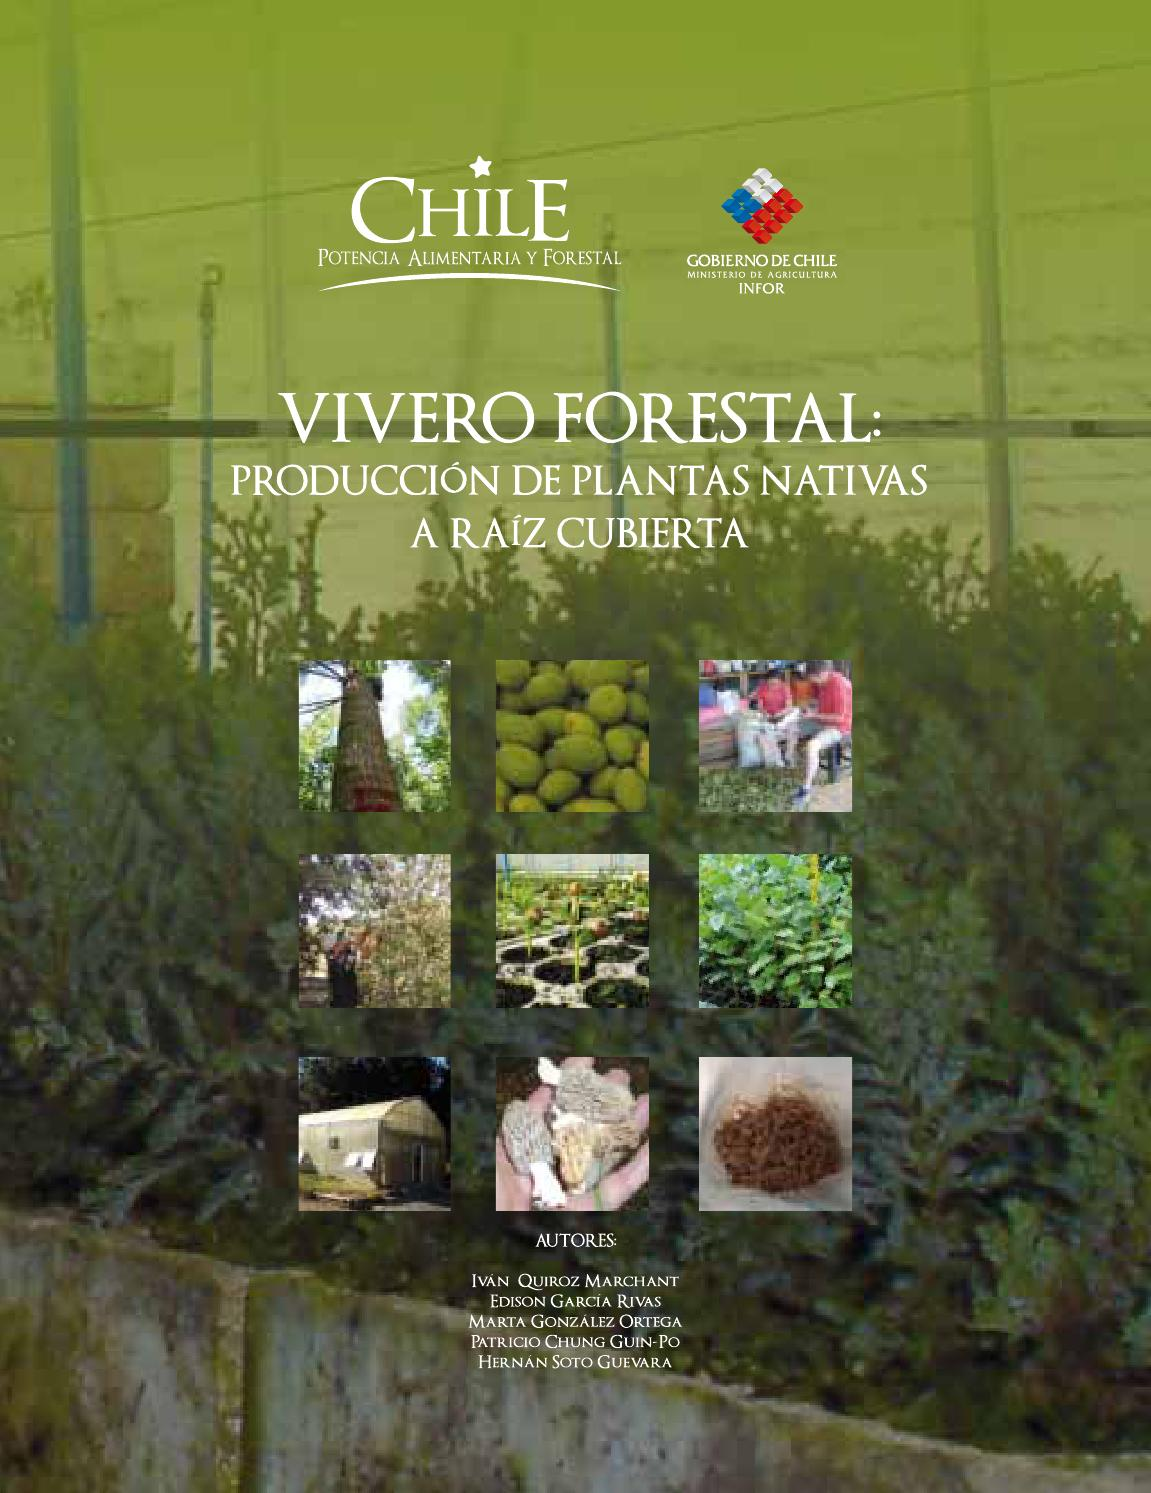 Vivero forestal produccion de plantas nativas a raiz for Manejo de viveros forestales